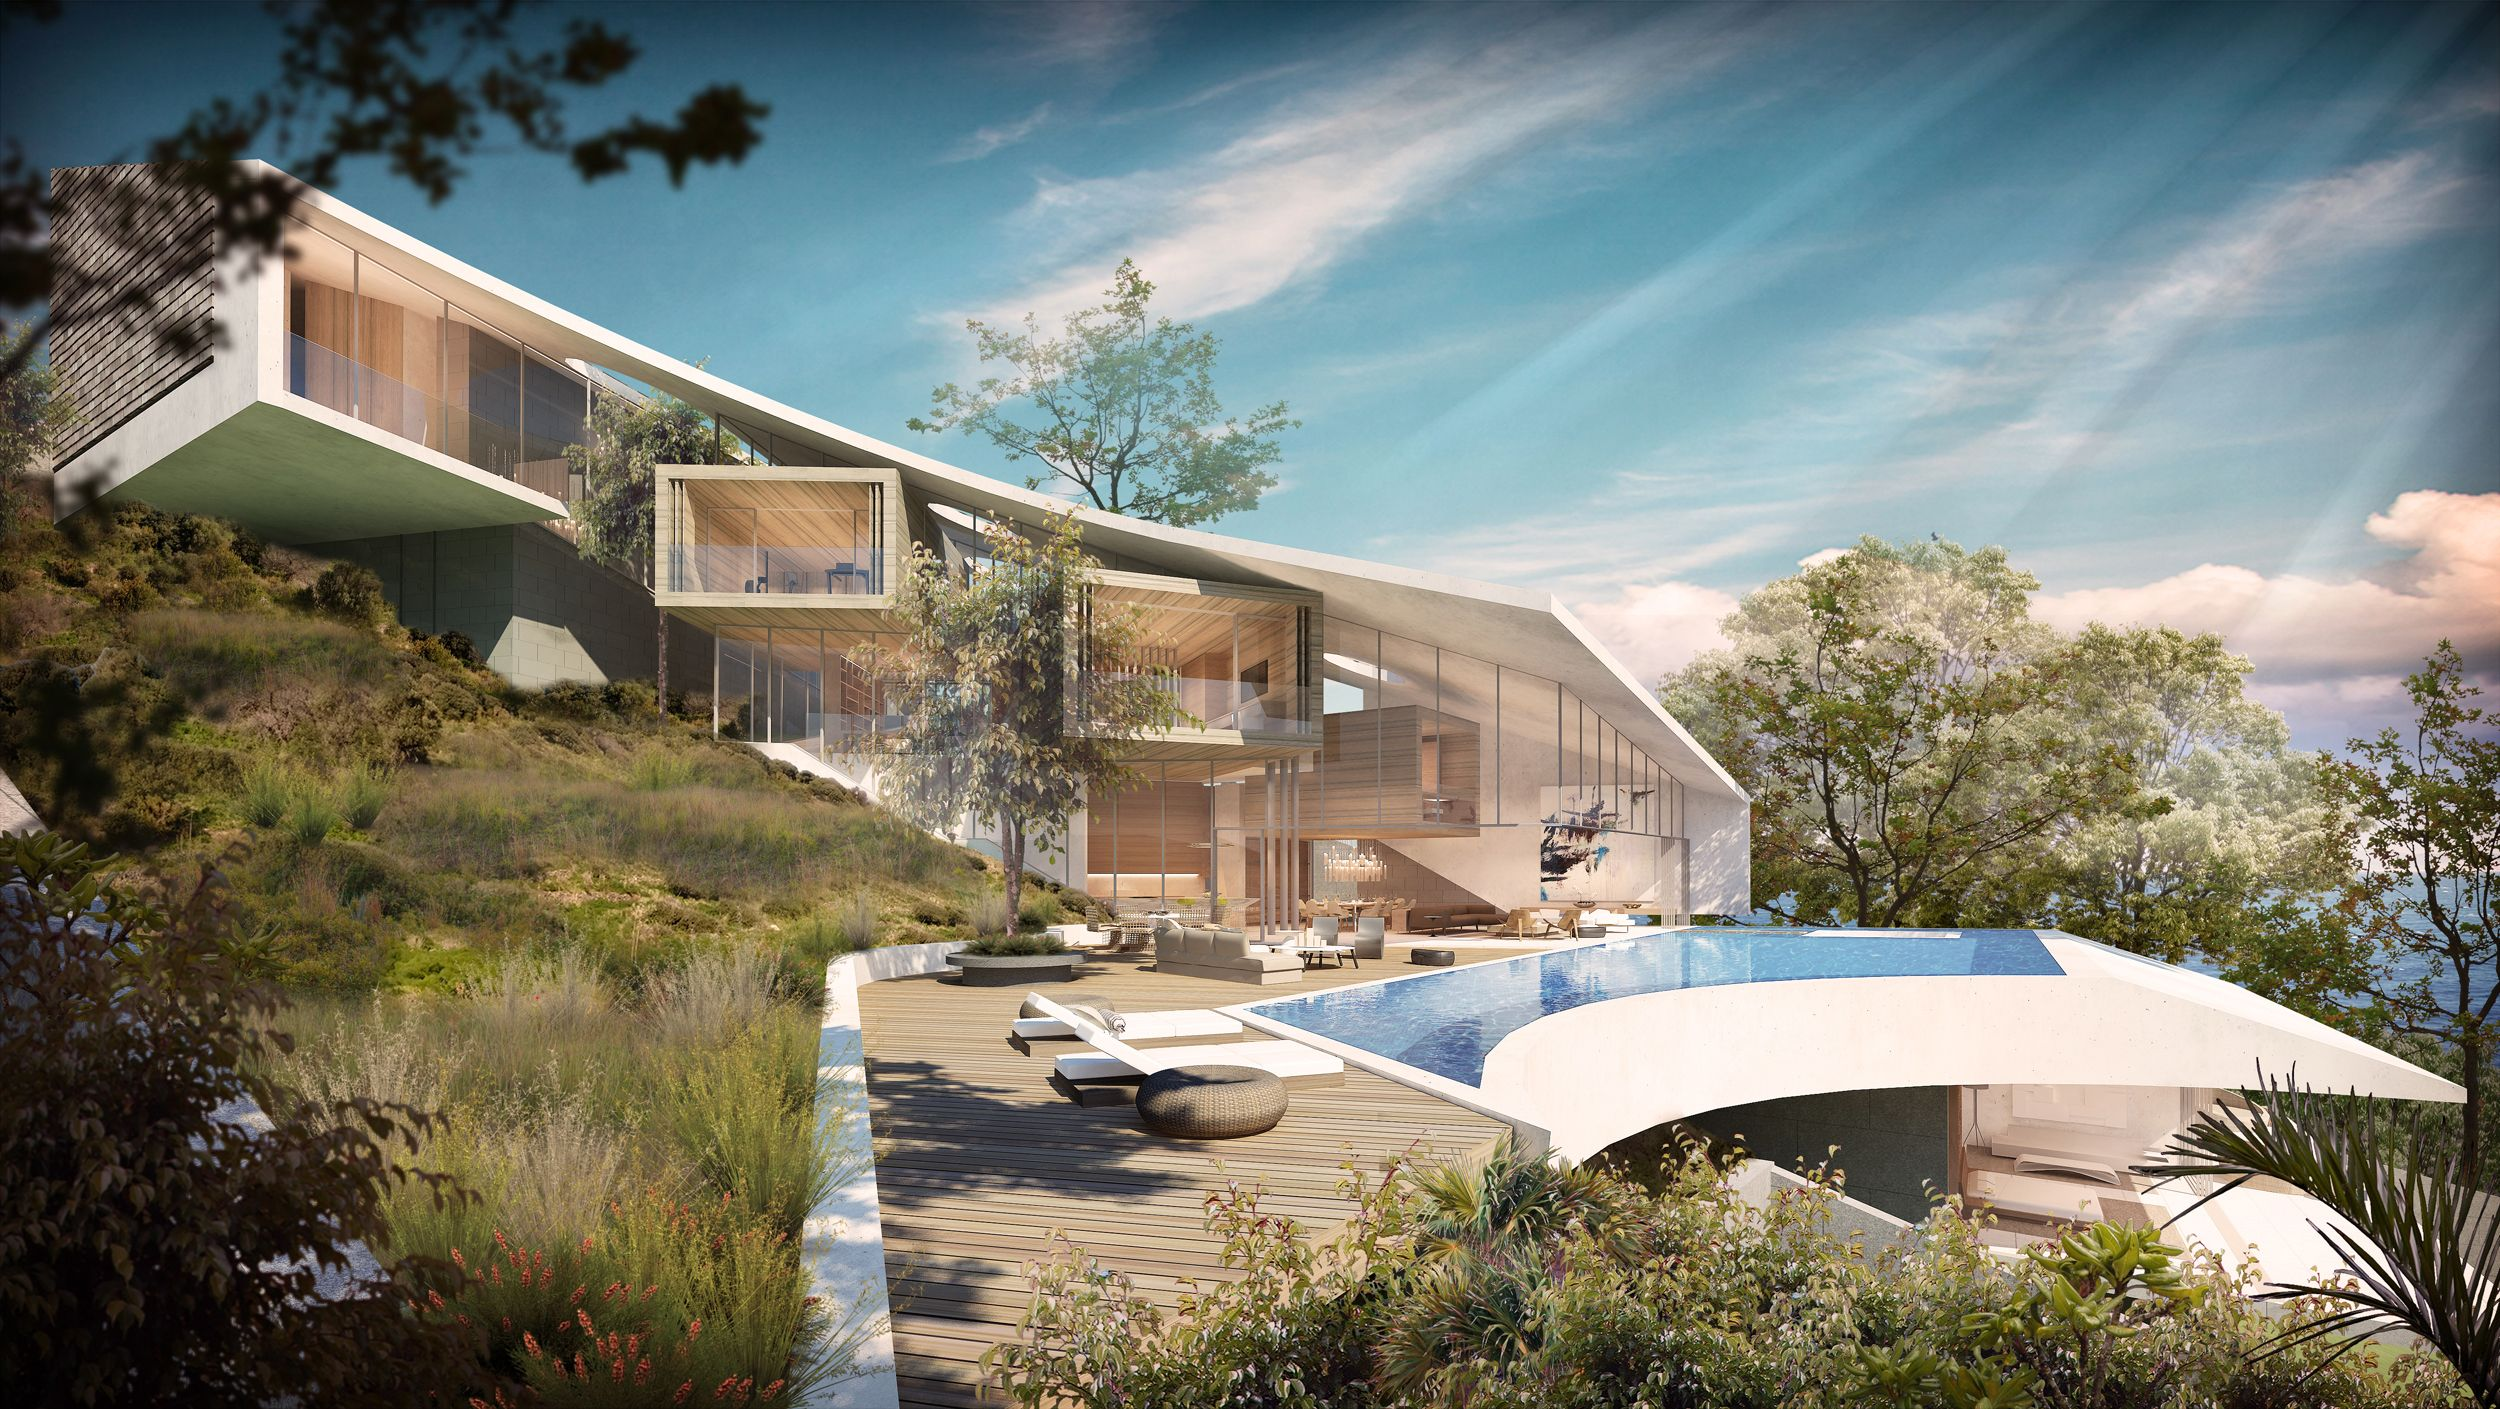 Colina by SAOTA. This family villa is situated on a steep slope overlooking the bay of Funchal. The sculptural geometry of the roof plane mirrors the view to the coast line. Terracing timber boxes float below the sloping roof plane and are orientated to frame significant views.